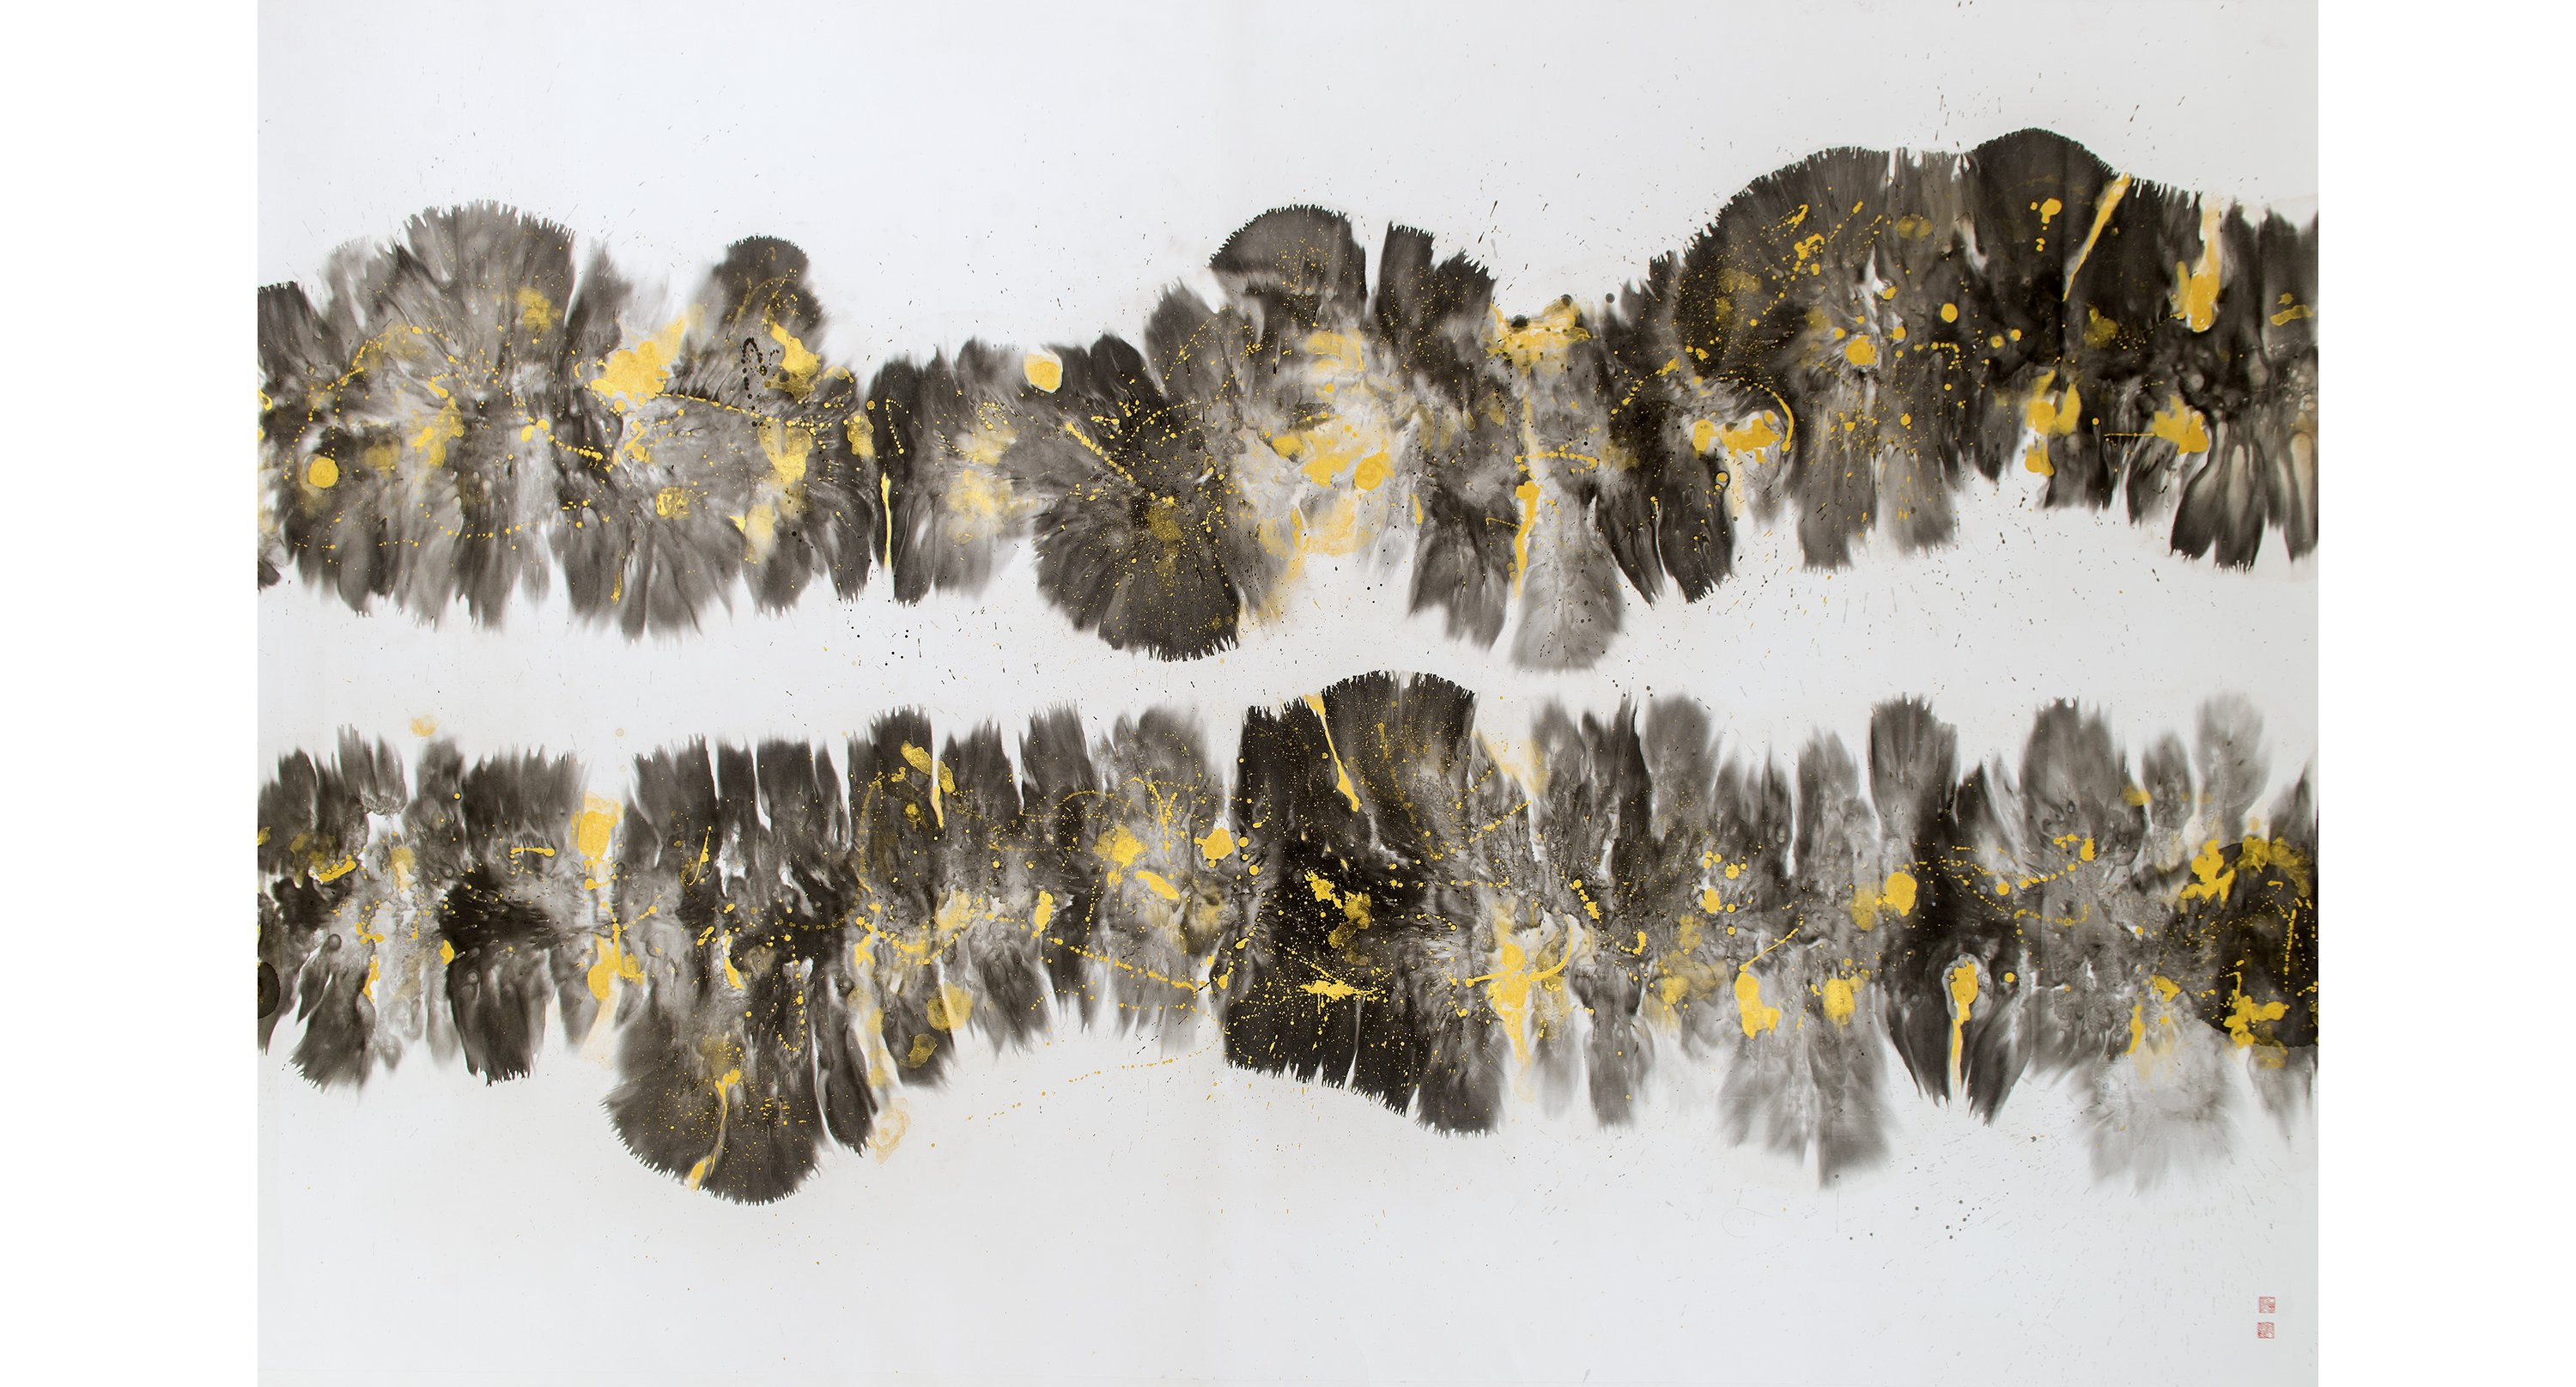 Through A Wormhole <br/> Chinese ink on rice paper<br/> 208 cm x 300 cm<br/> ©Chloe Ho 2020